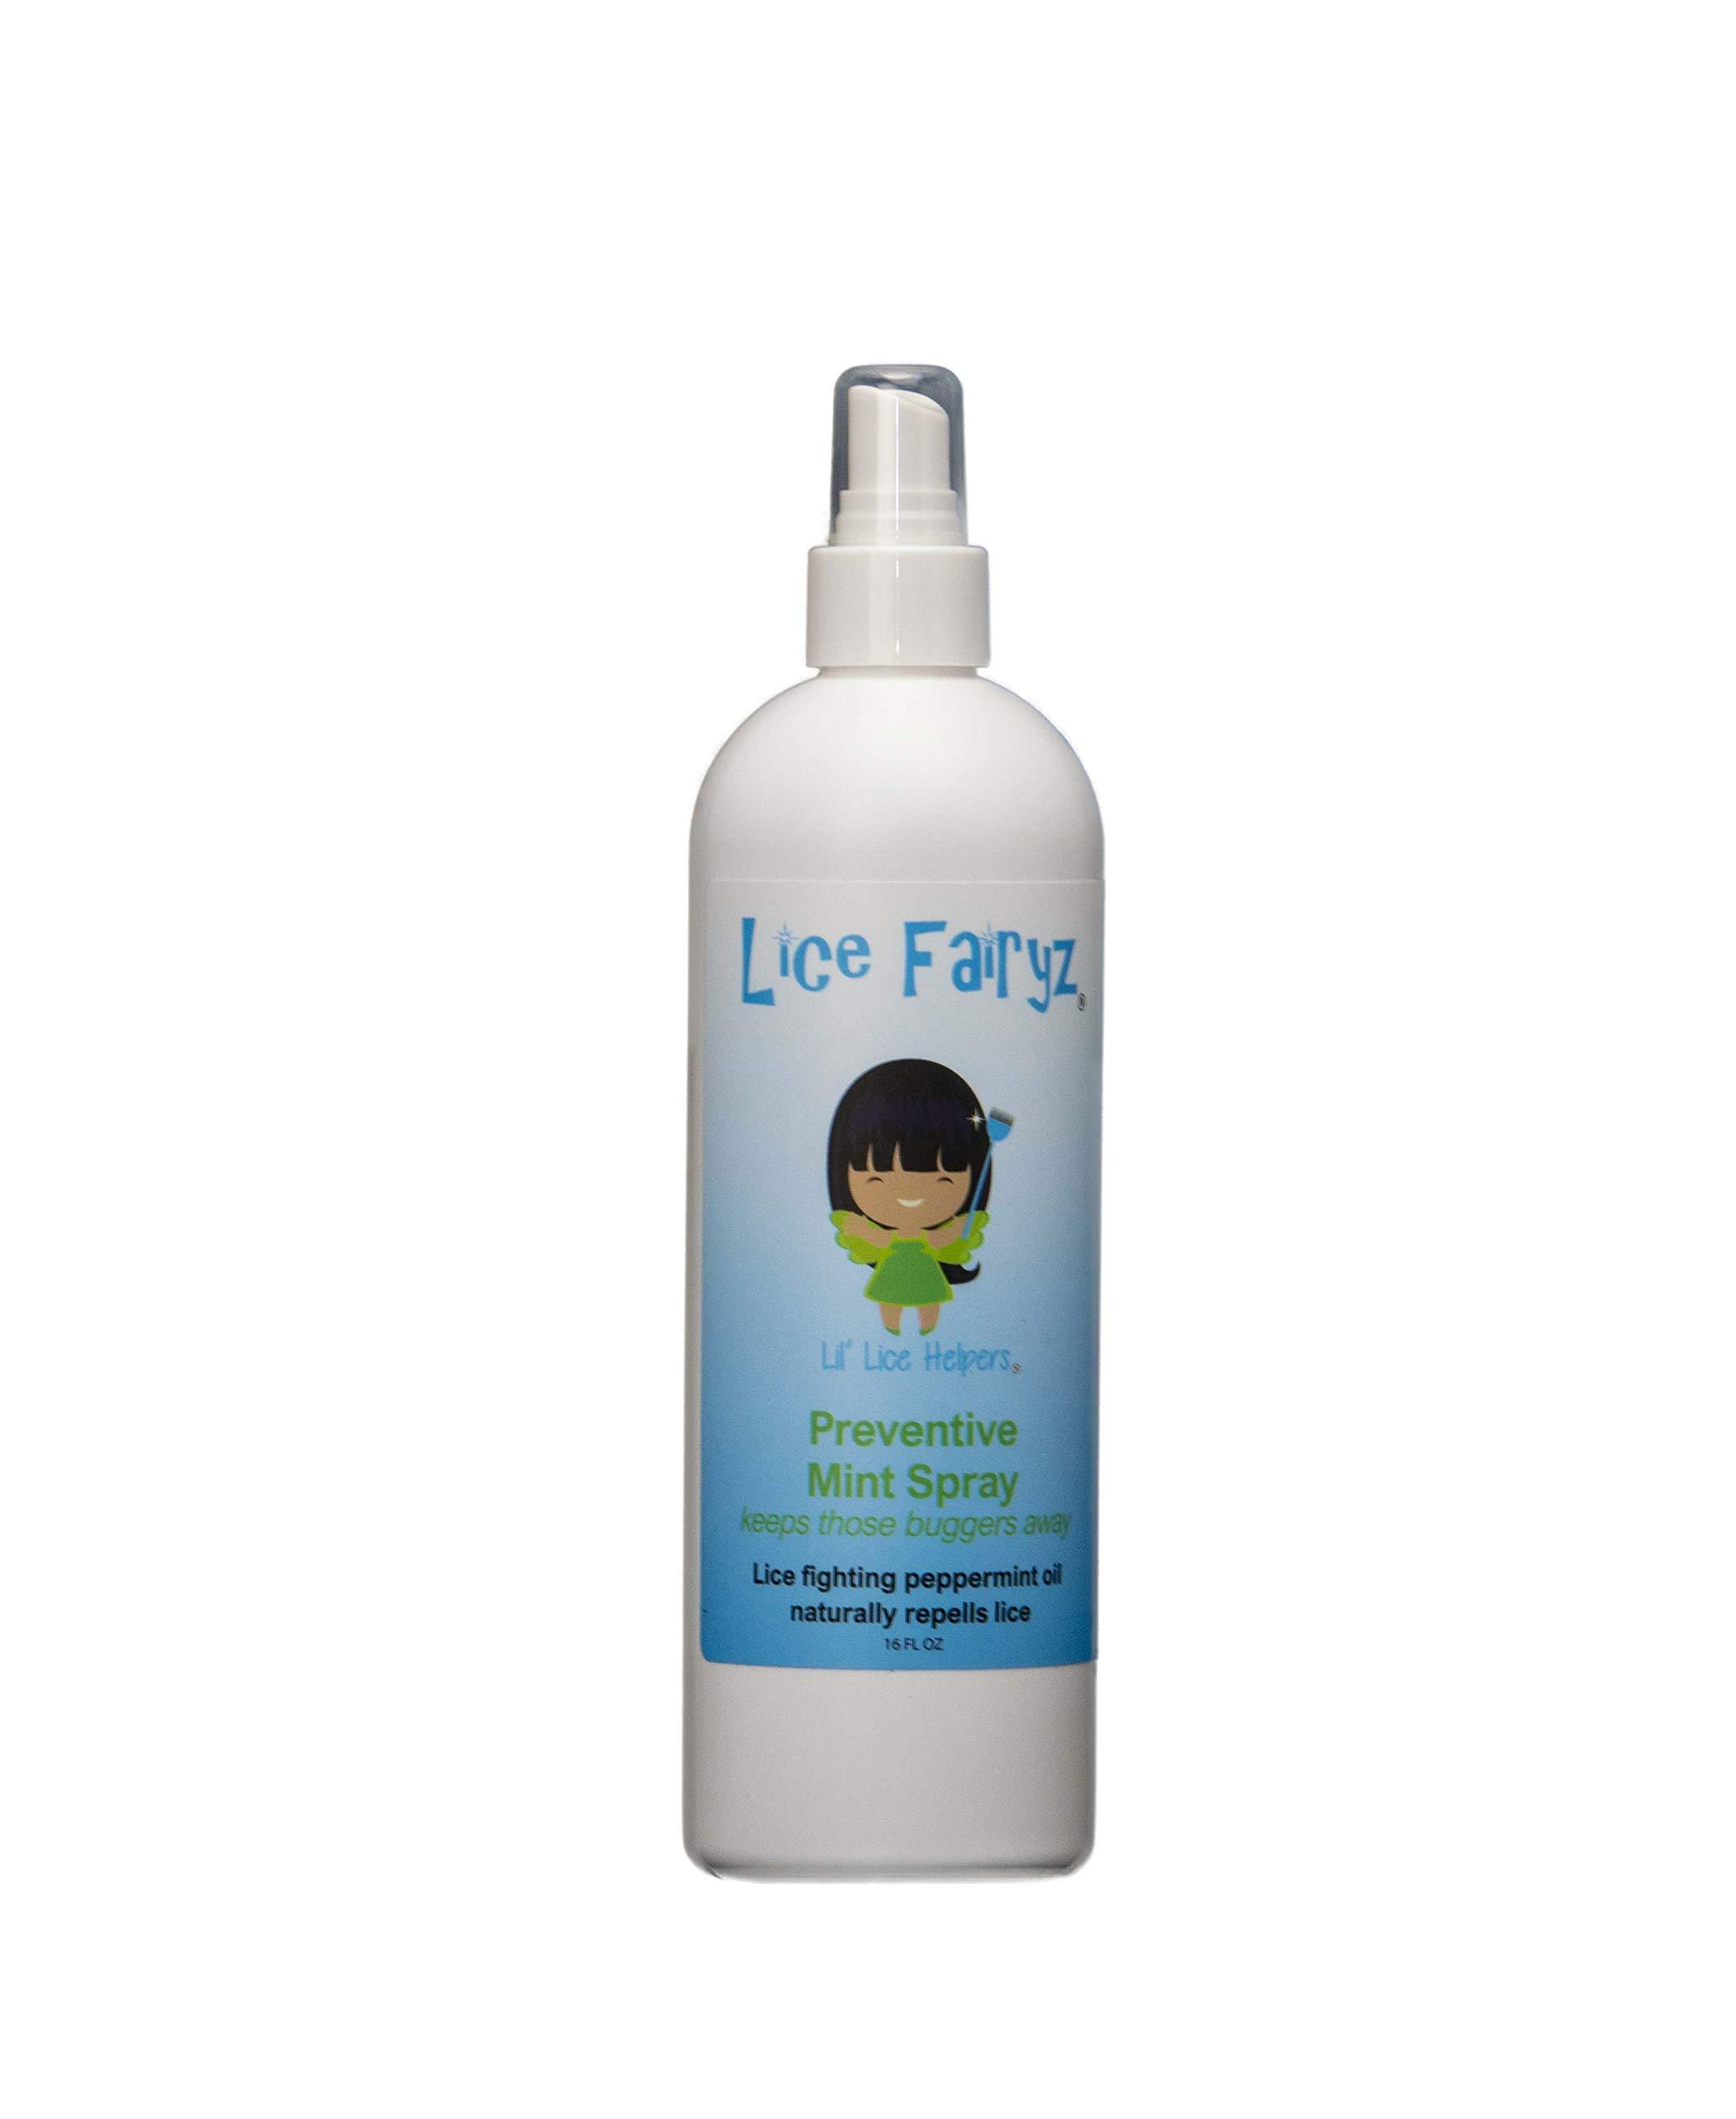 Lice Fairyz Preventive Mint Spray Naturally and Safely Repels Head Lice with 100% Natural Essential Oil. Effective Against Super Lice. Use Before or After Lice Treatment. Non-Toxic. No Pesticides.